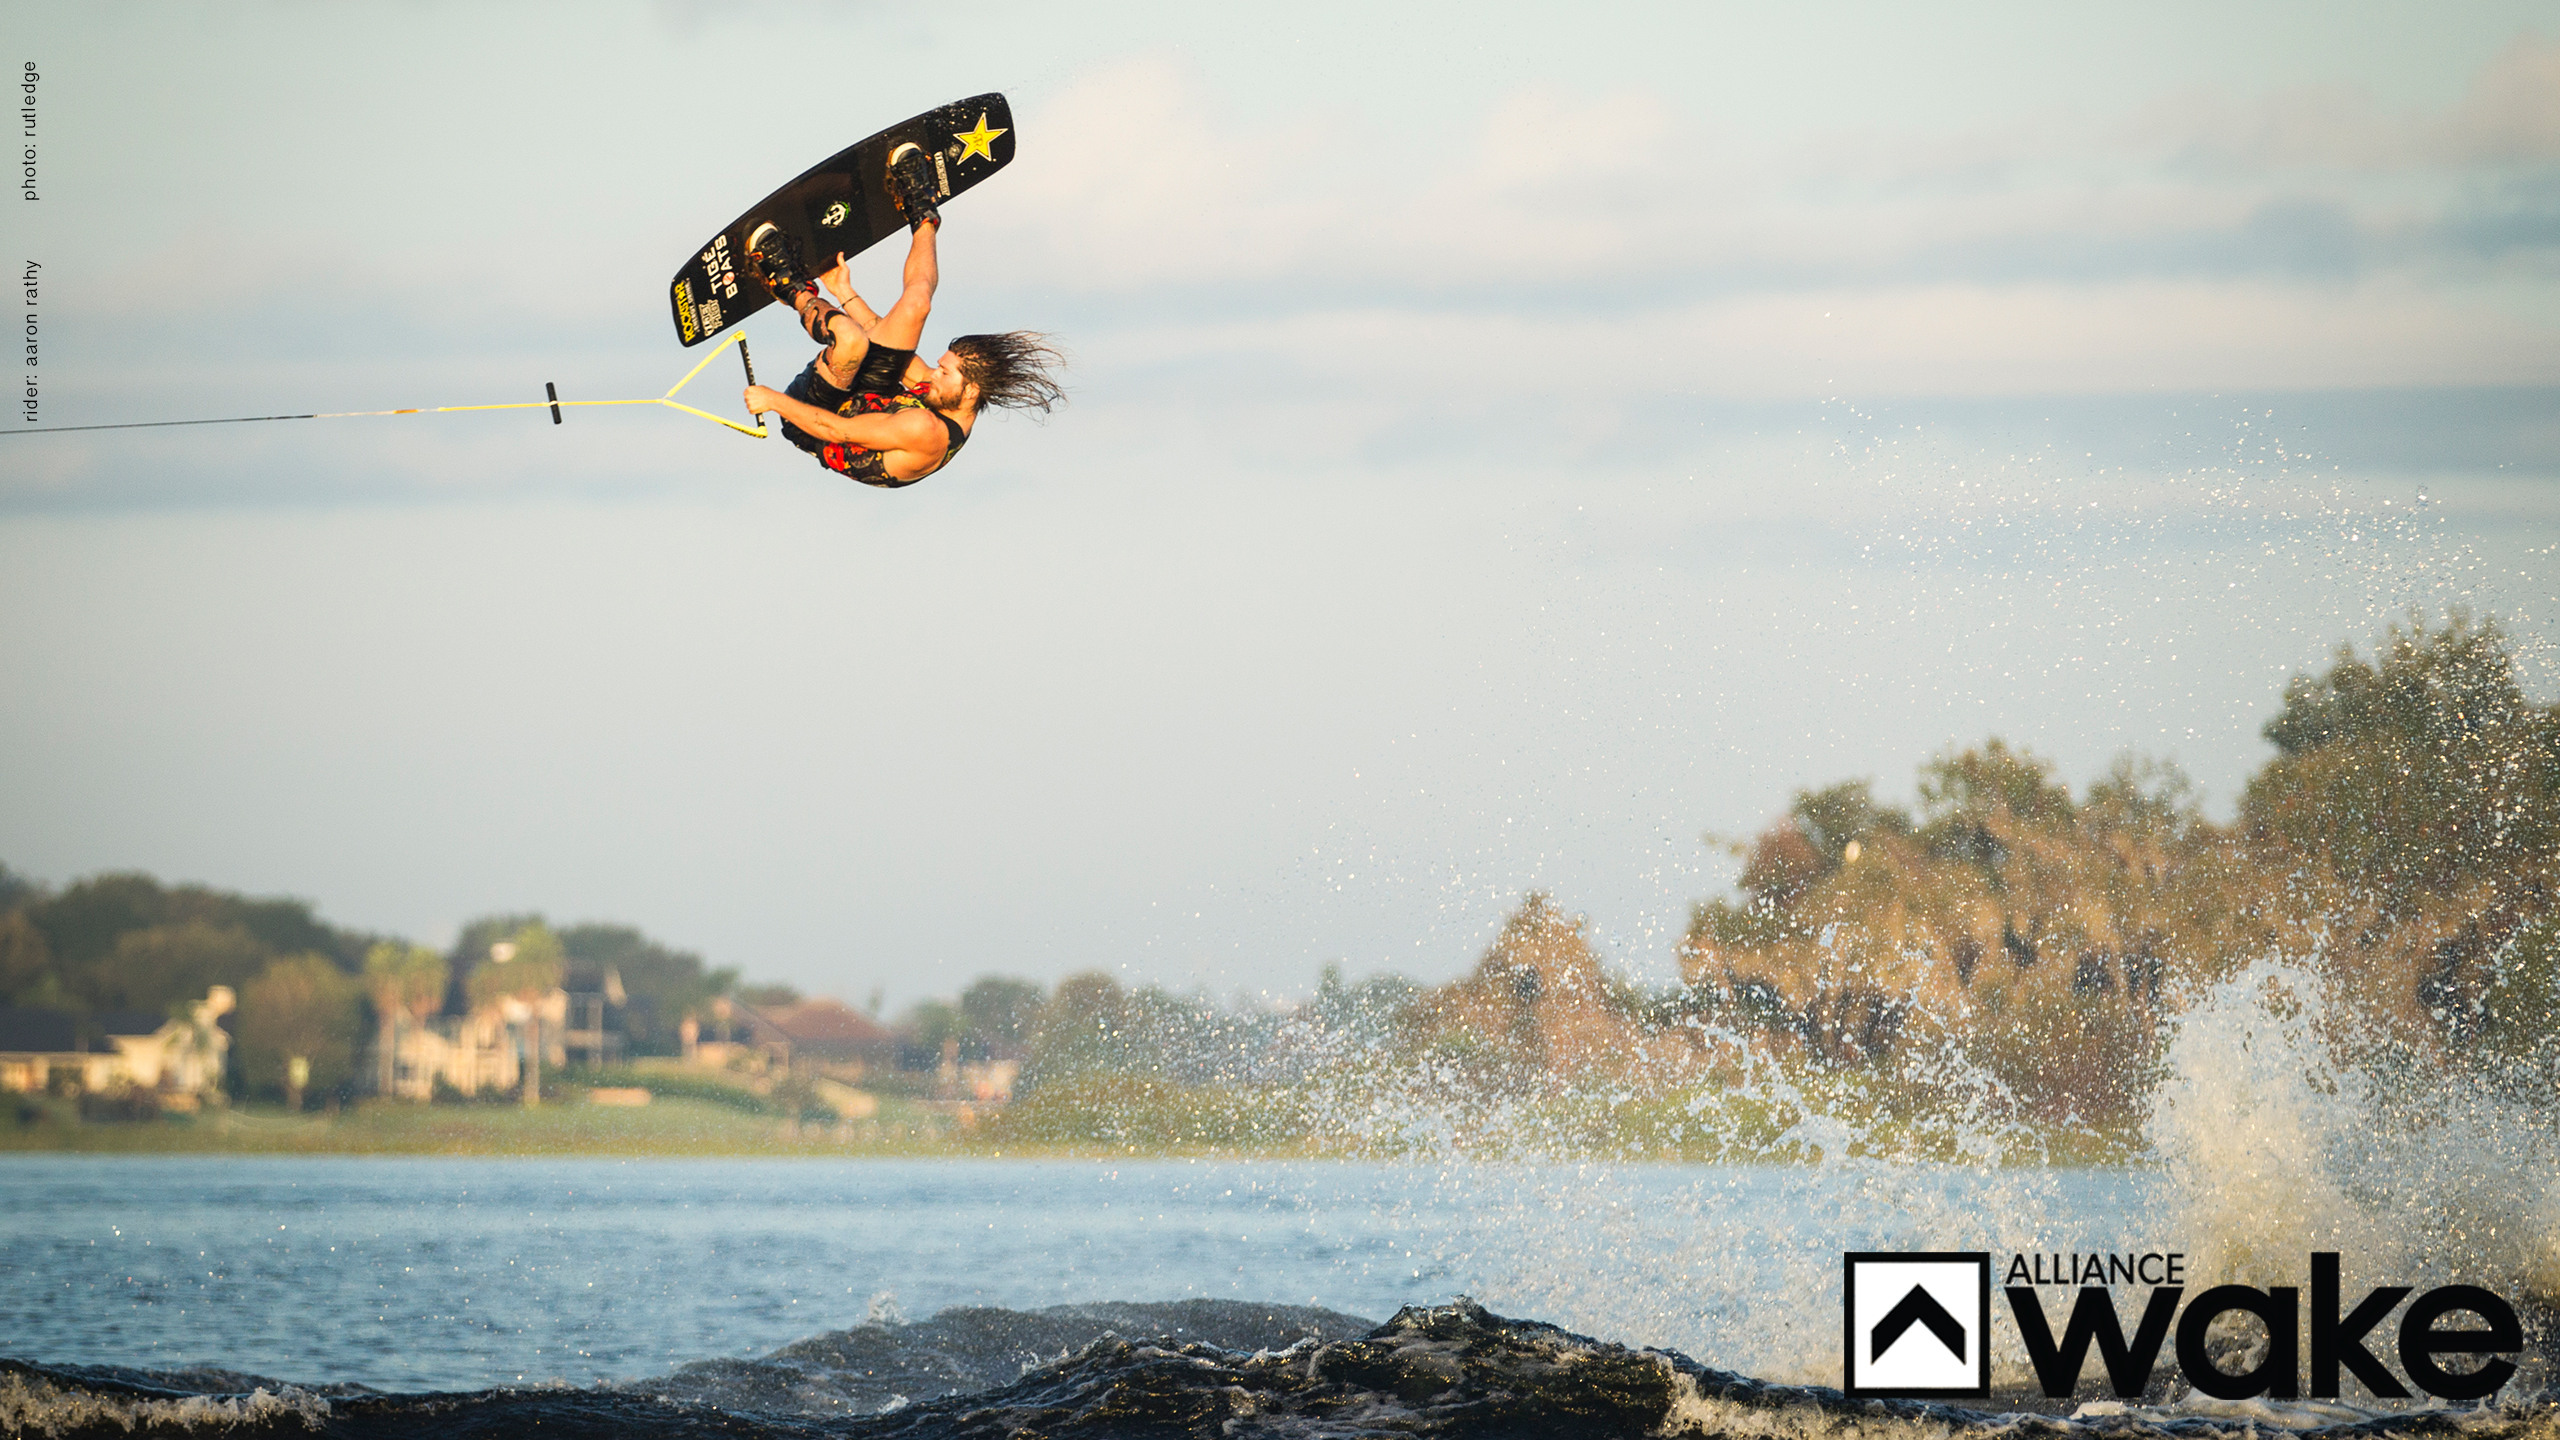 Surfing Girl Iphone Wallpaper Wallpapers Roty Aaron Rathy Alliance Wakeboard